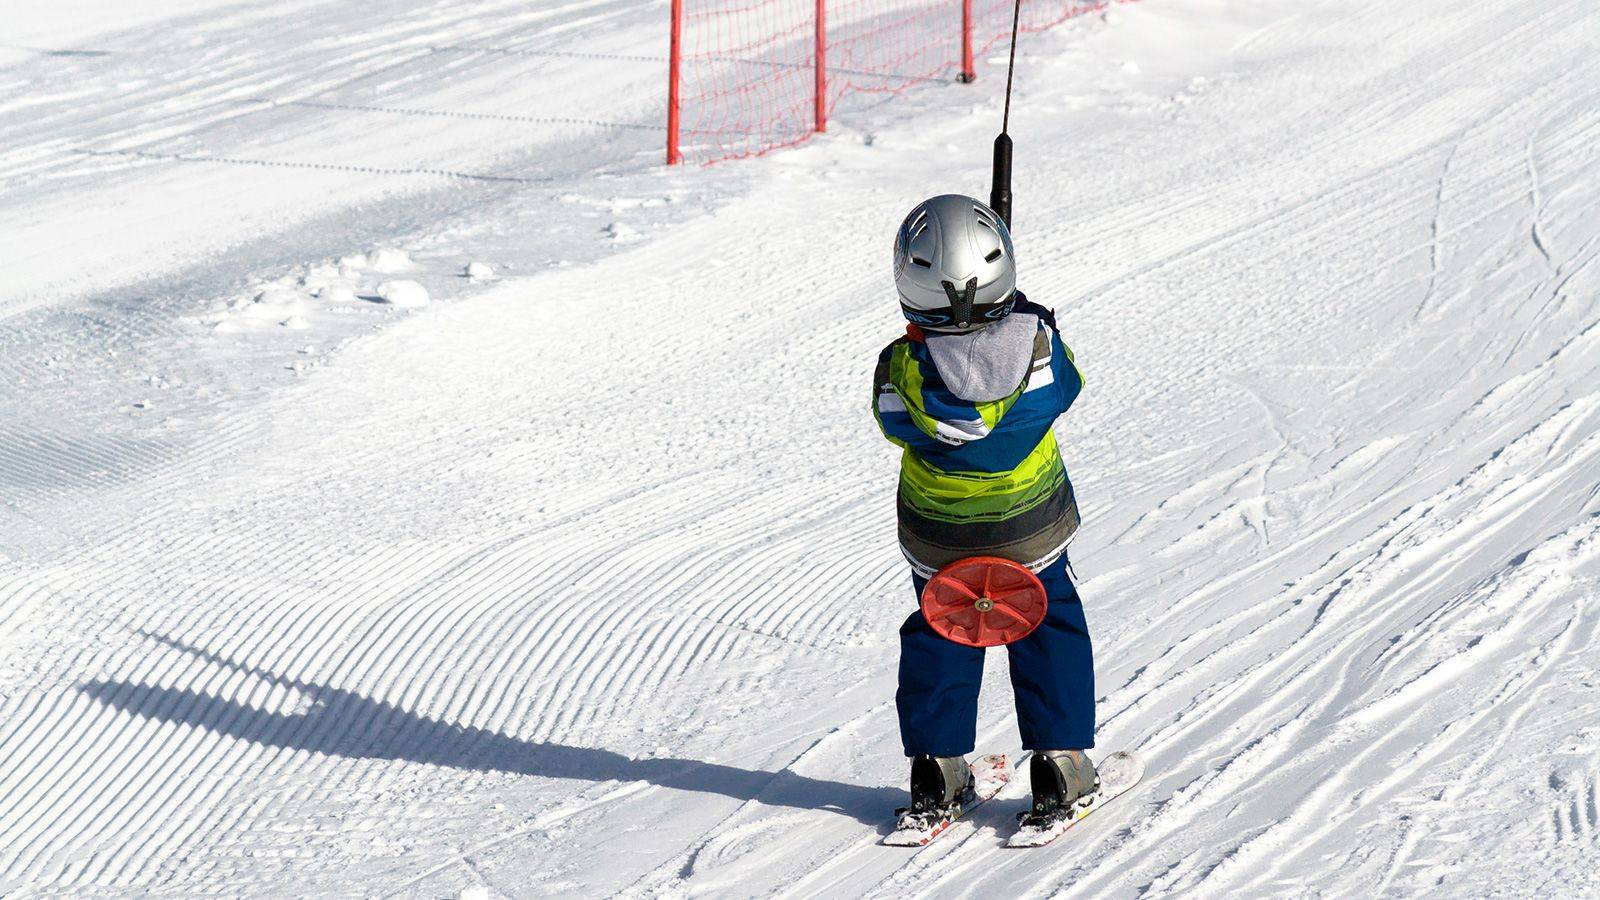 A child learns to go on the ski lift at Passo San Pellegrino